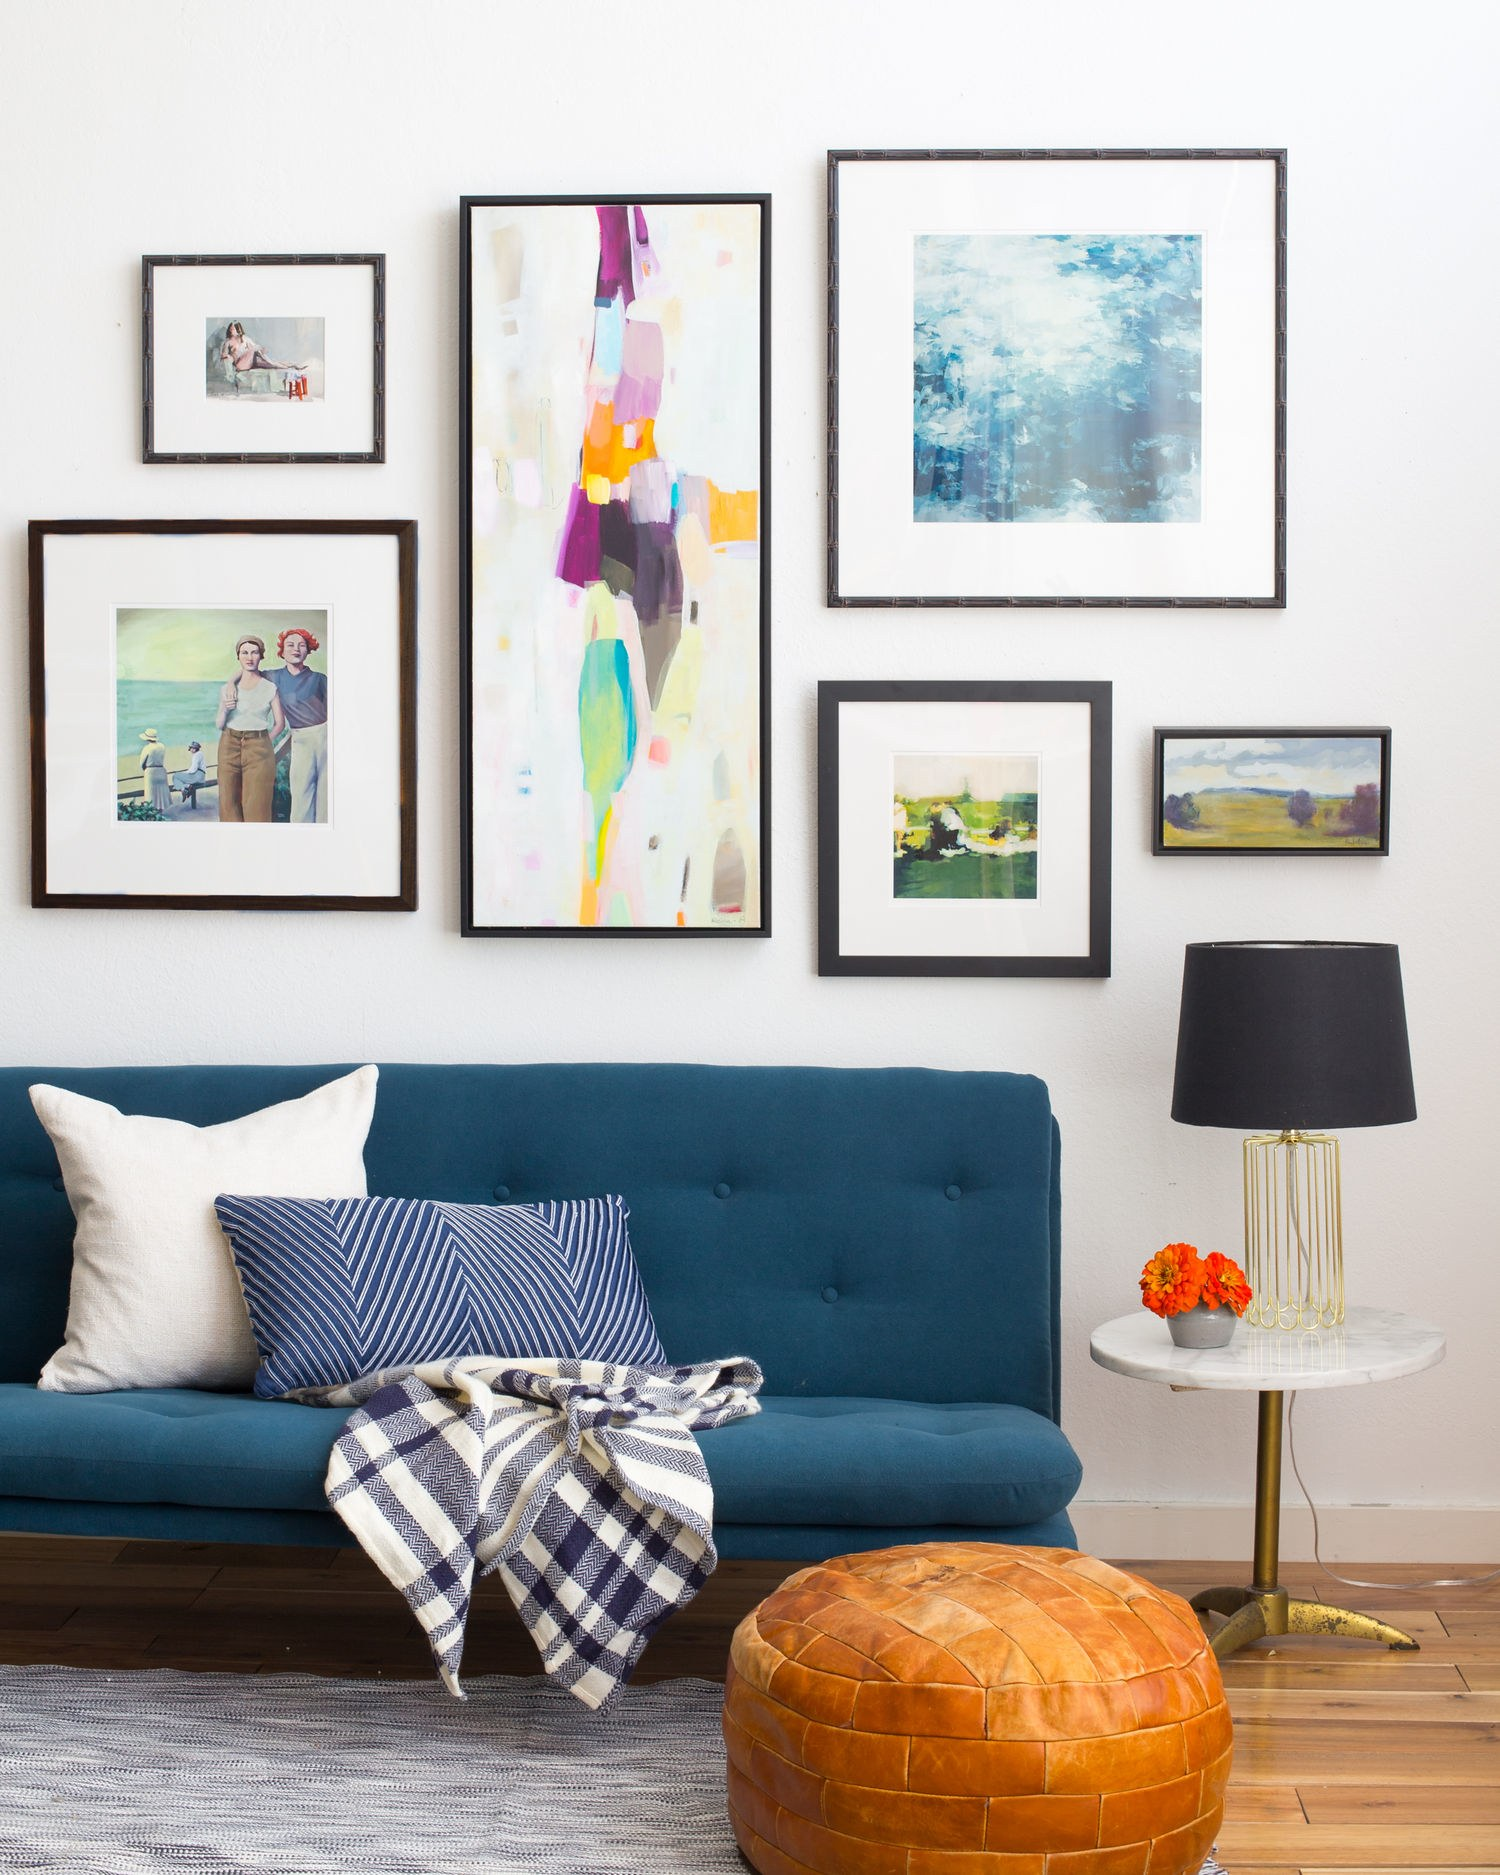 The Best Living Room Wall Art Decor Ideas For 2019